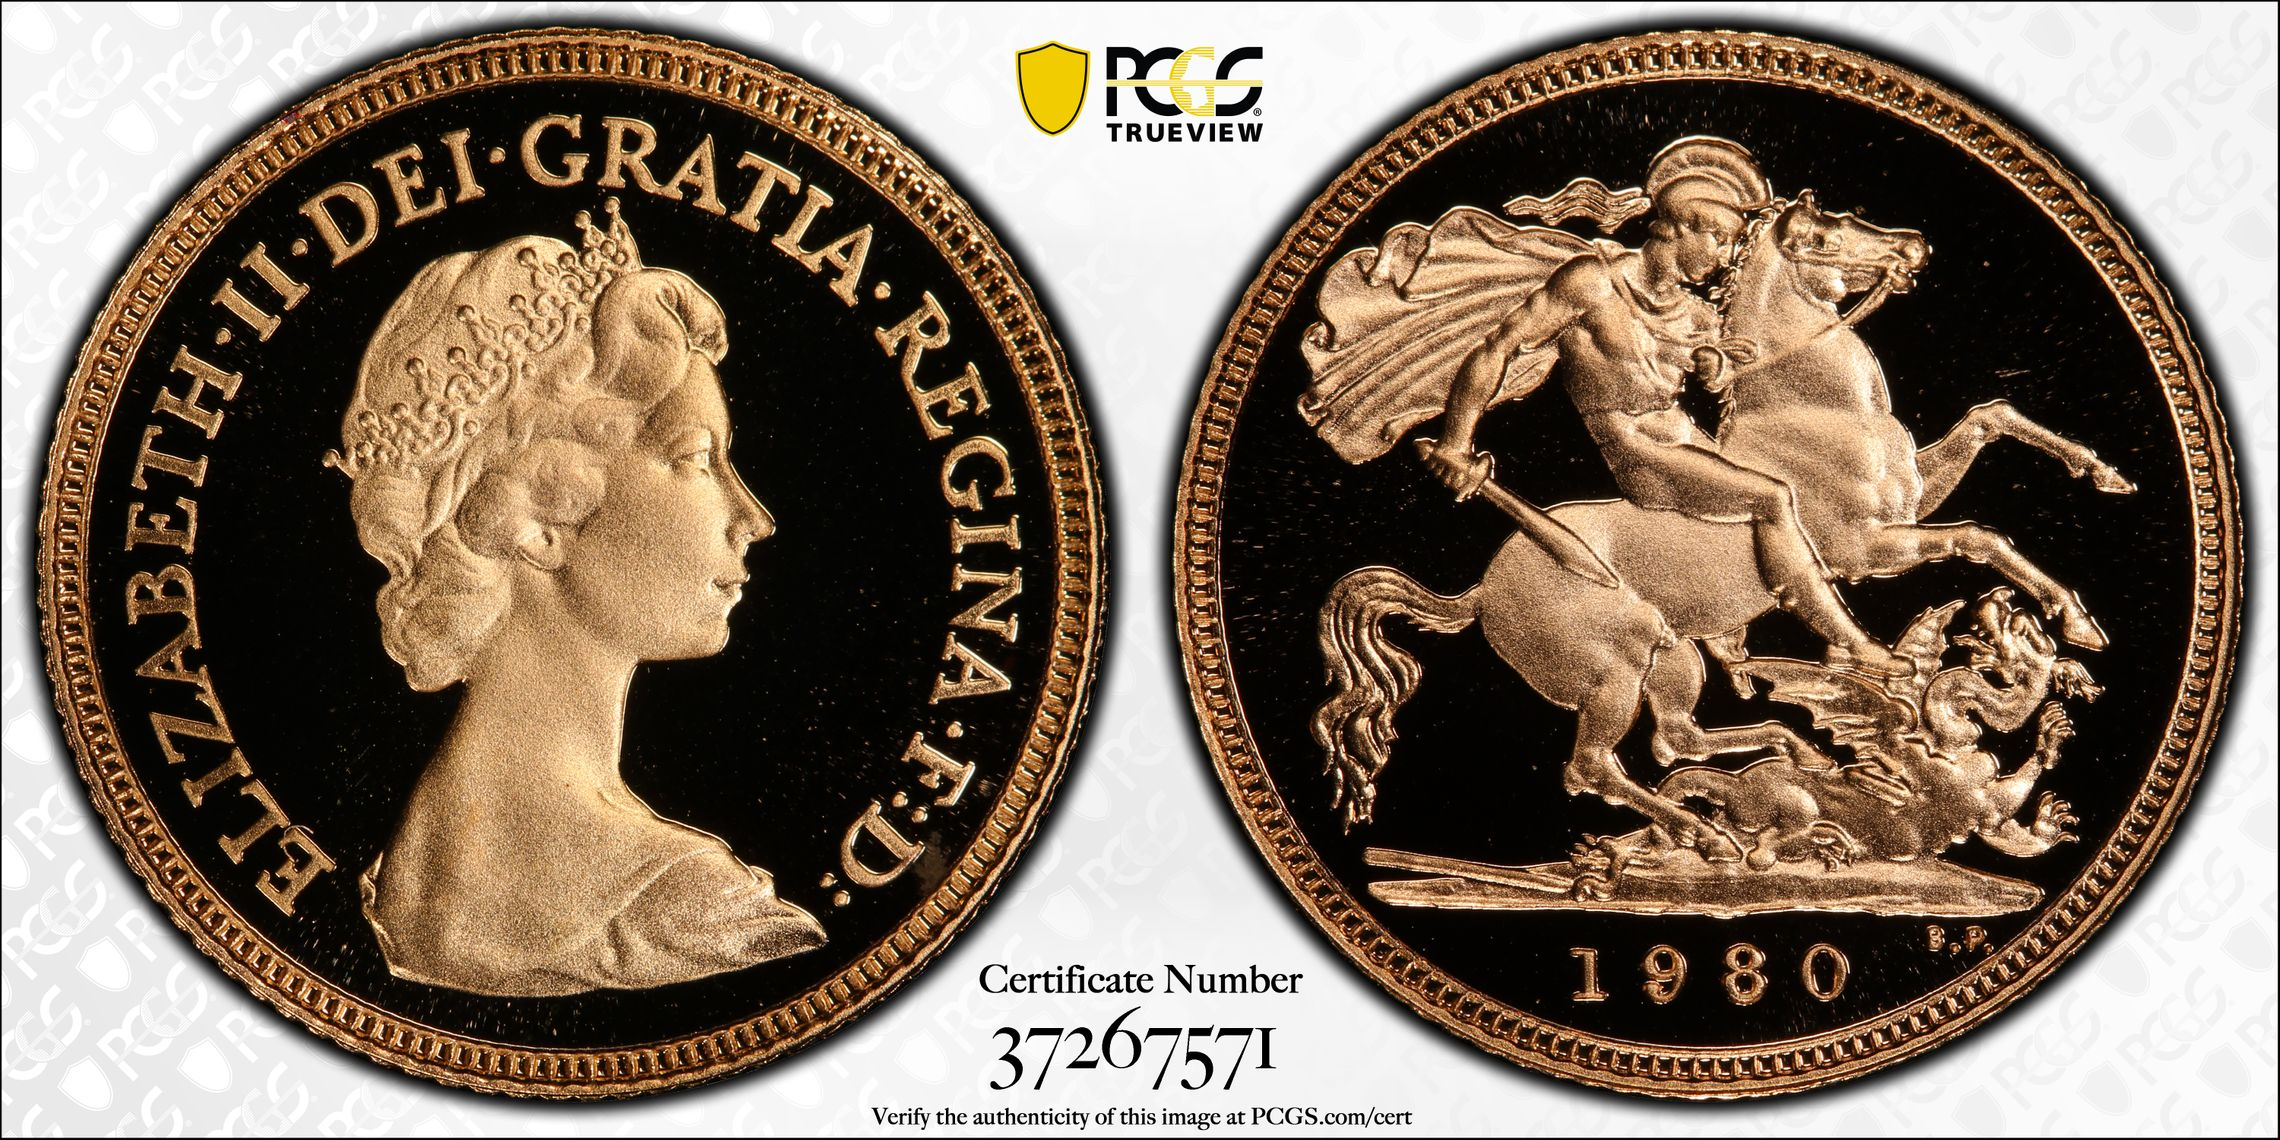 Great Britain 1980 Half Sovereign - PCGS PR69